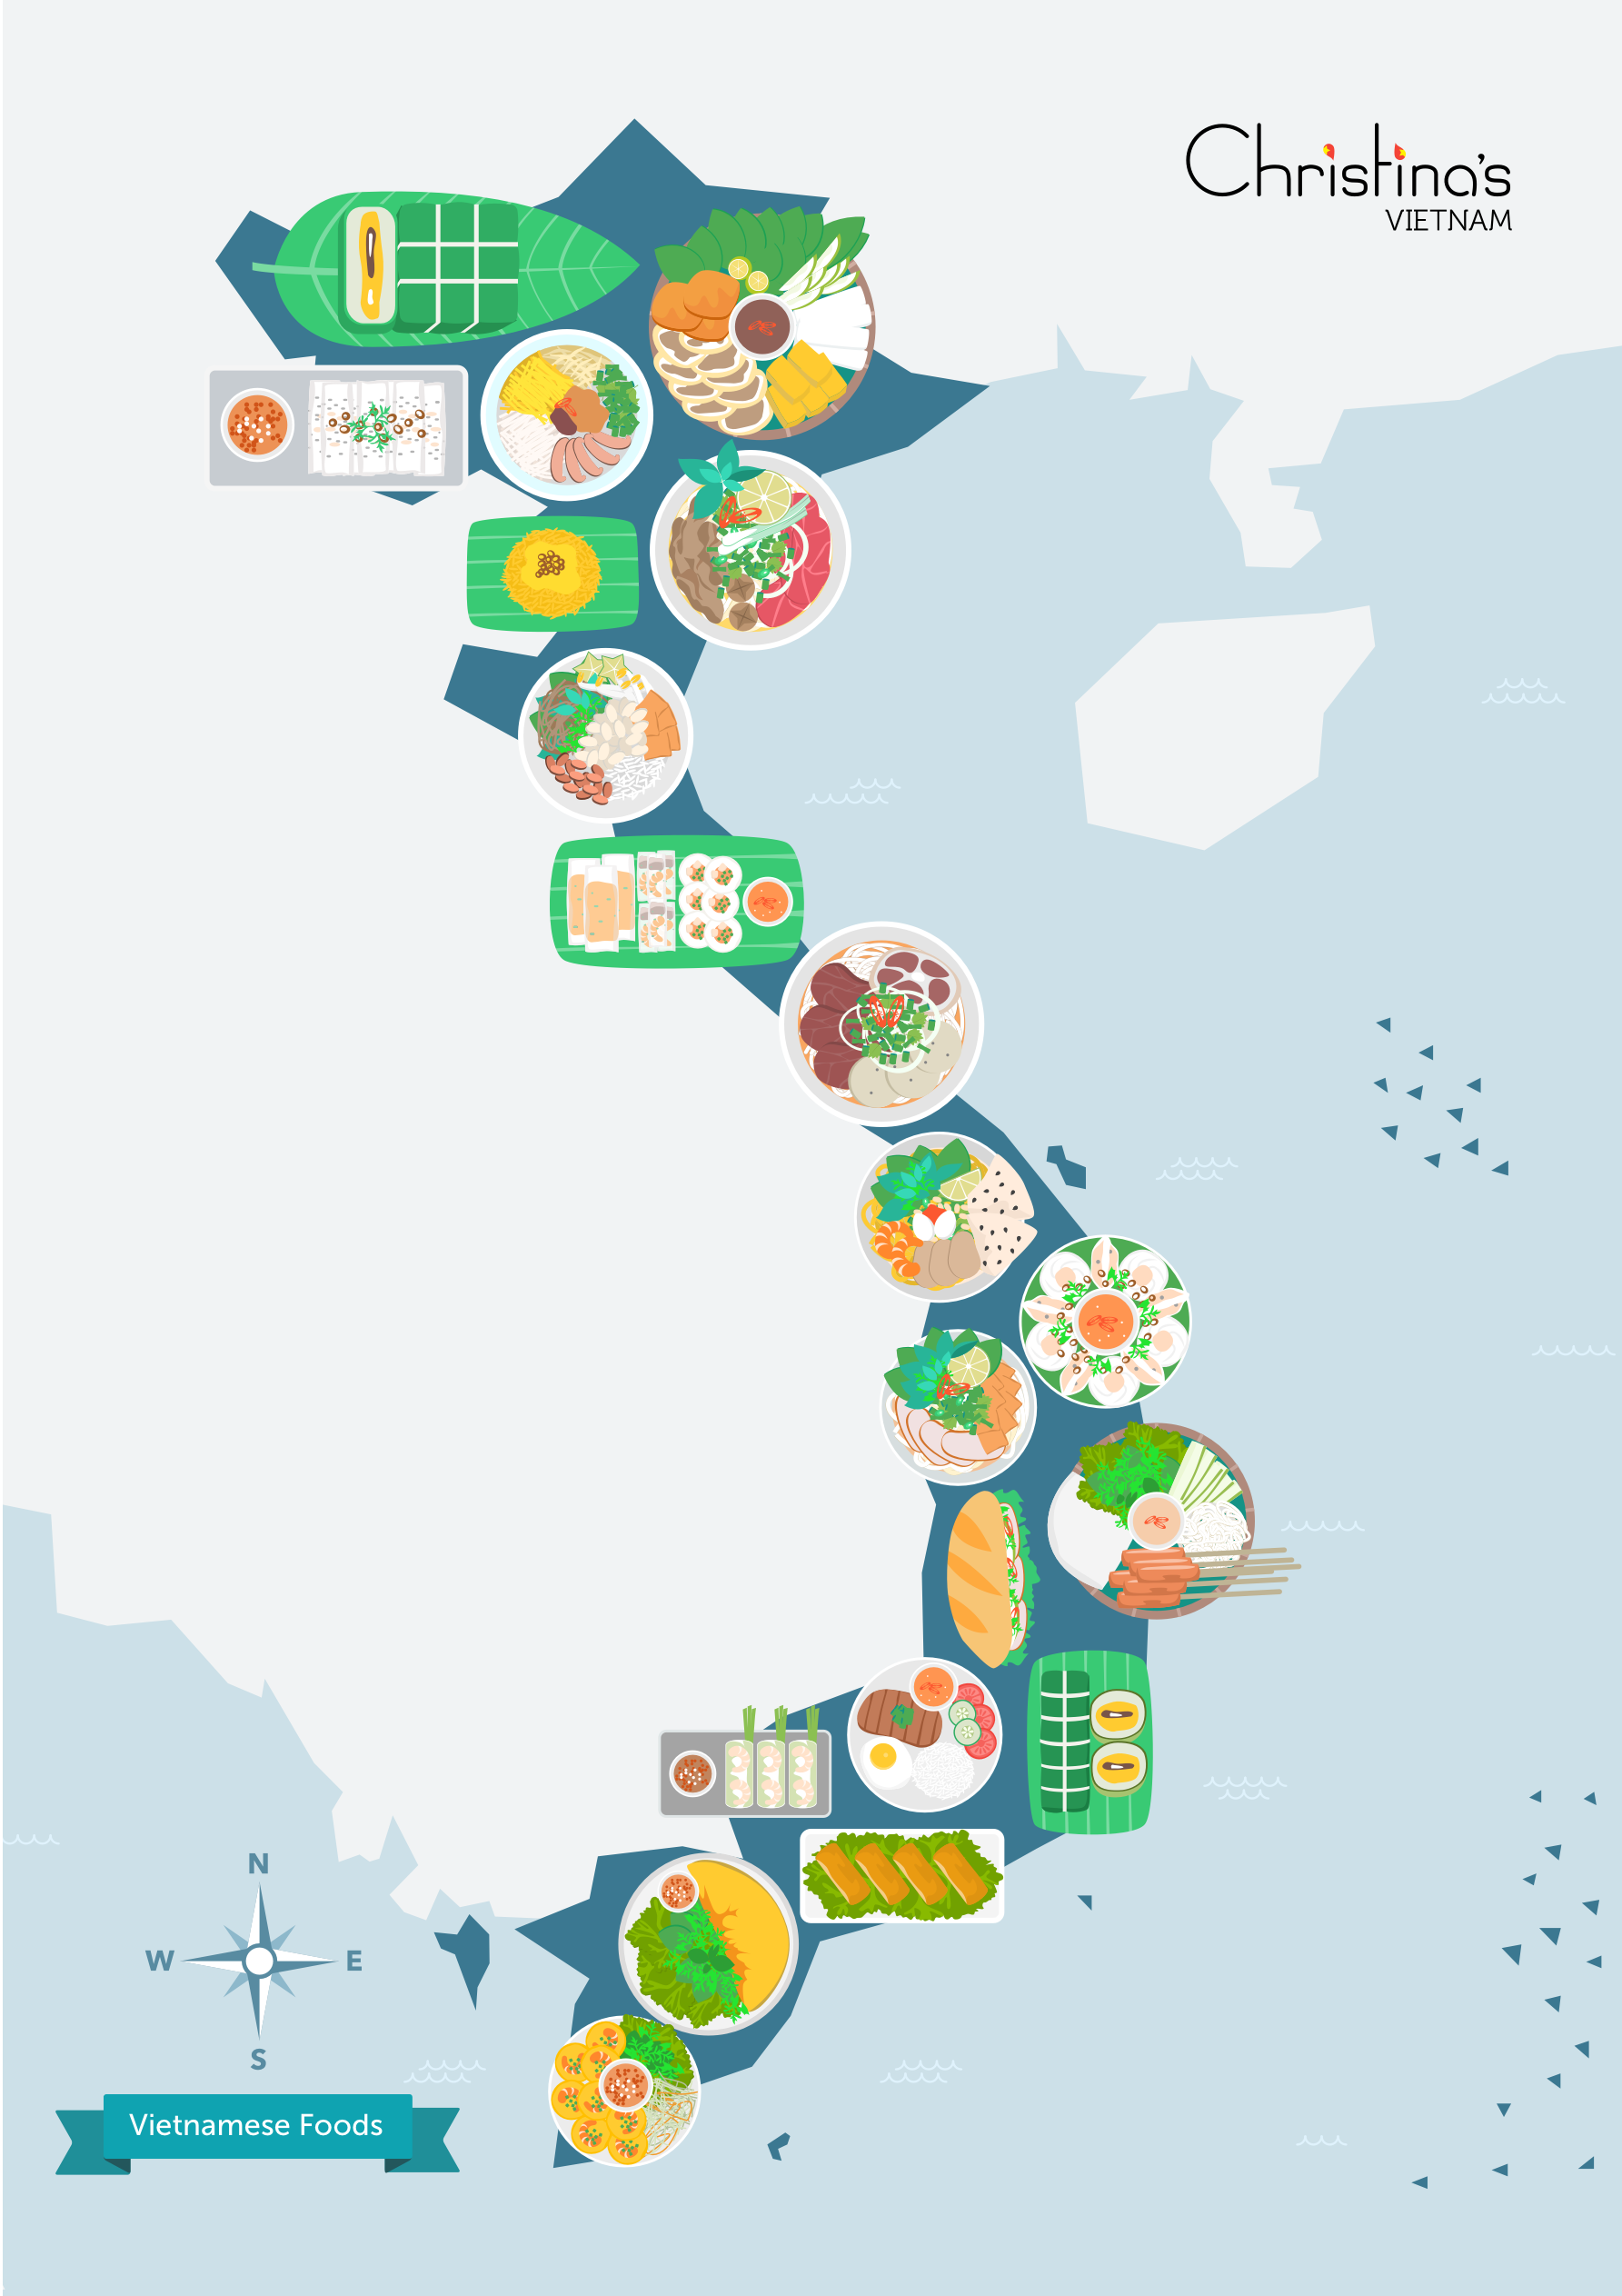 North Vietnam And South Vietnam Map.Regional Differences In Vietnamese Cuisine North Central And